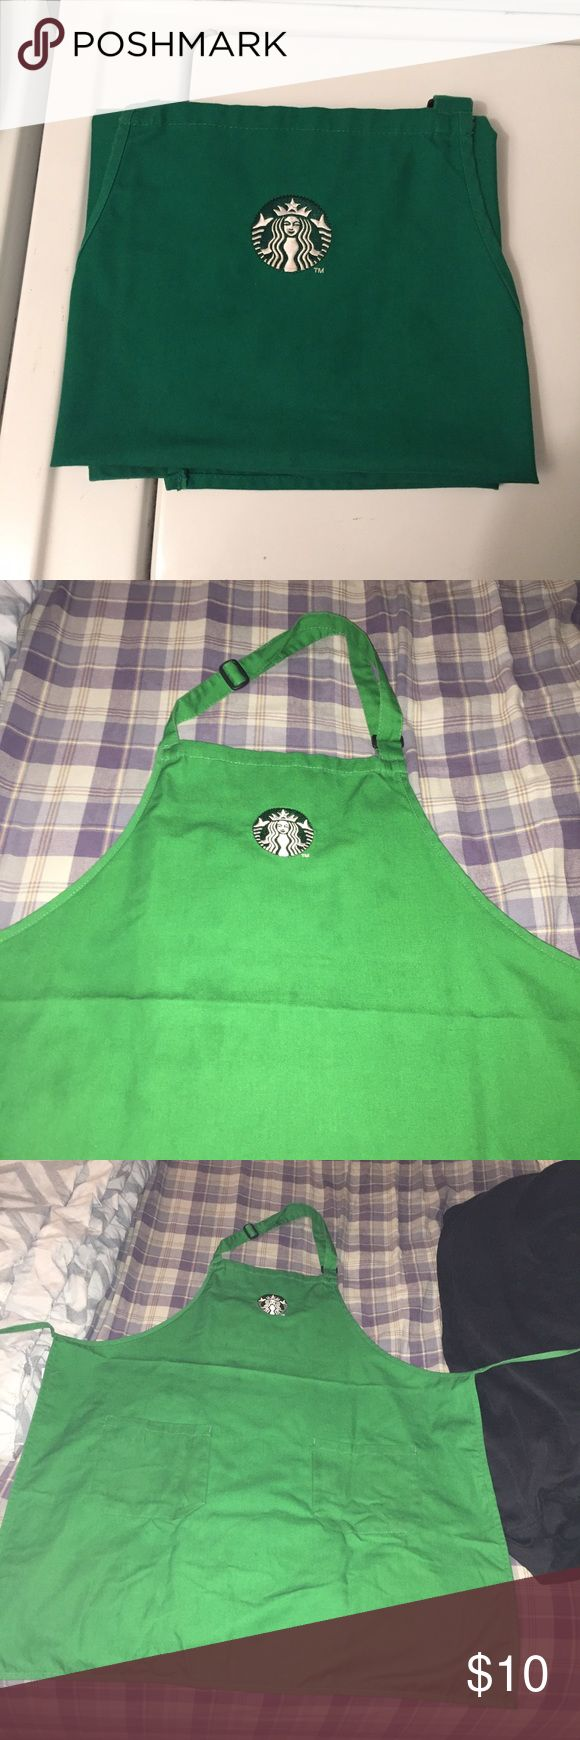 Authentic Starbucks apron Authentic Starbucks green apron! I've worn them for work but they're in good condition ☕️ Starbucks Other